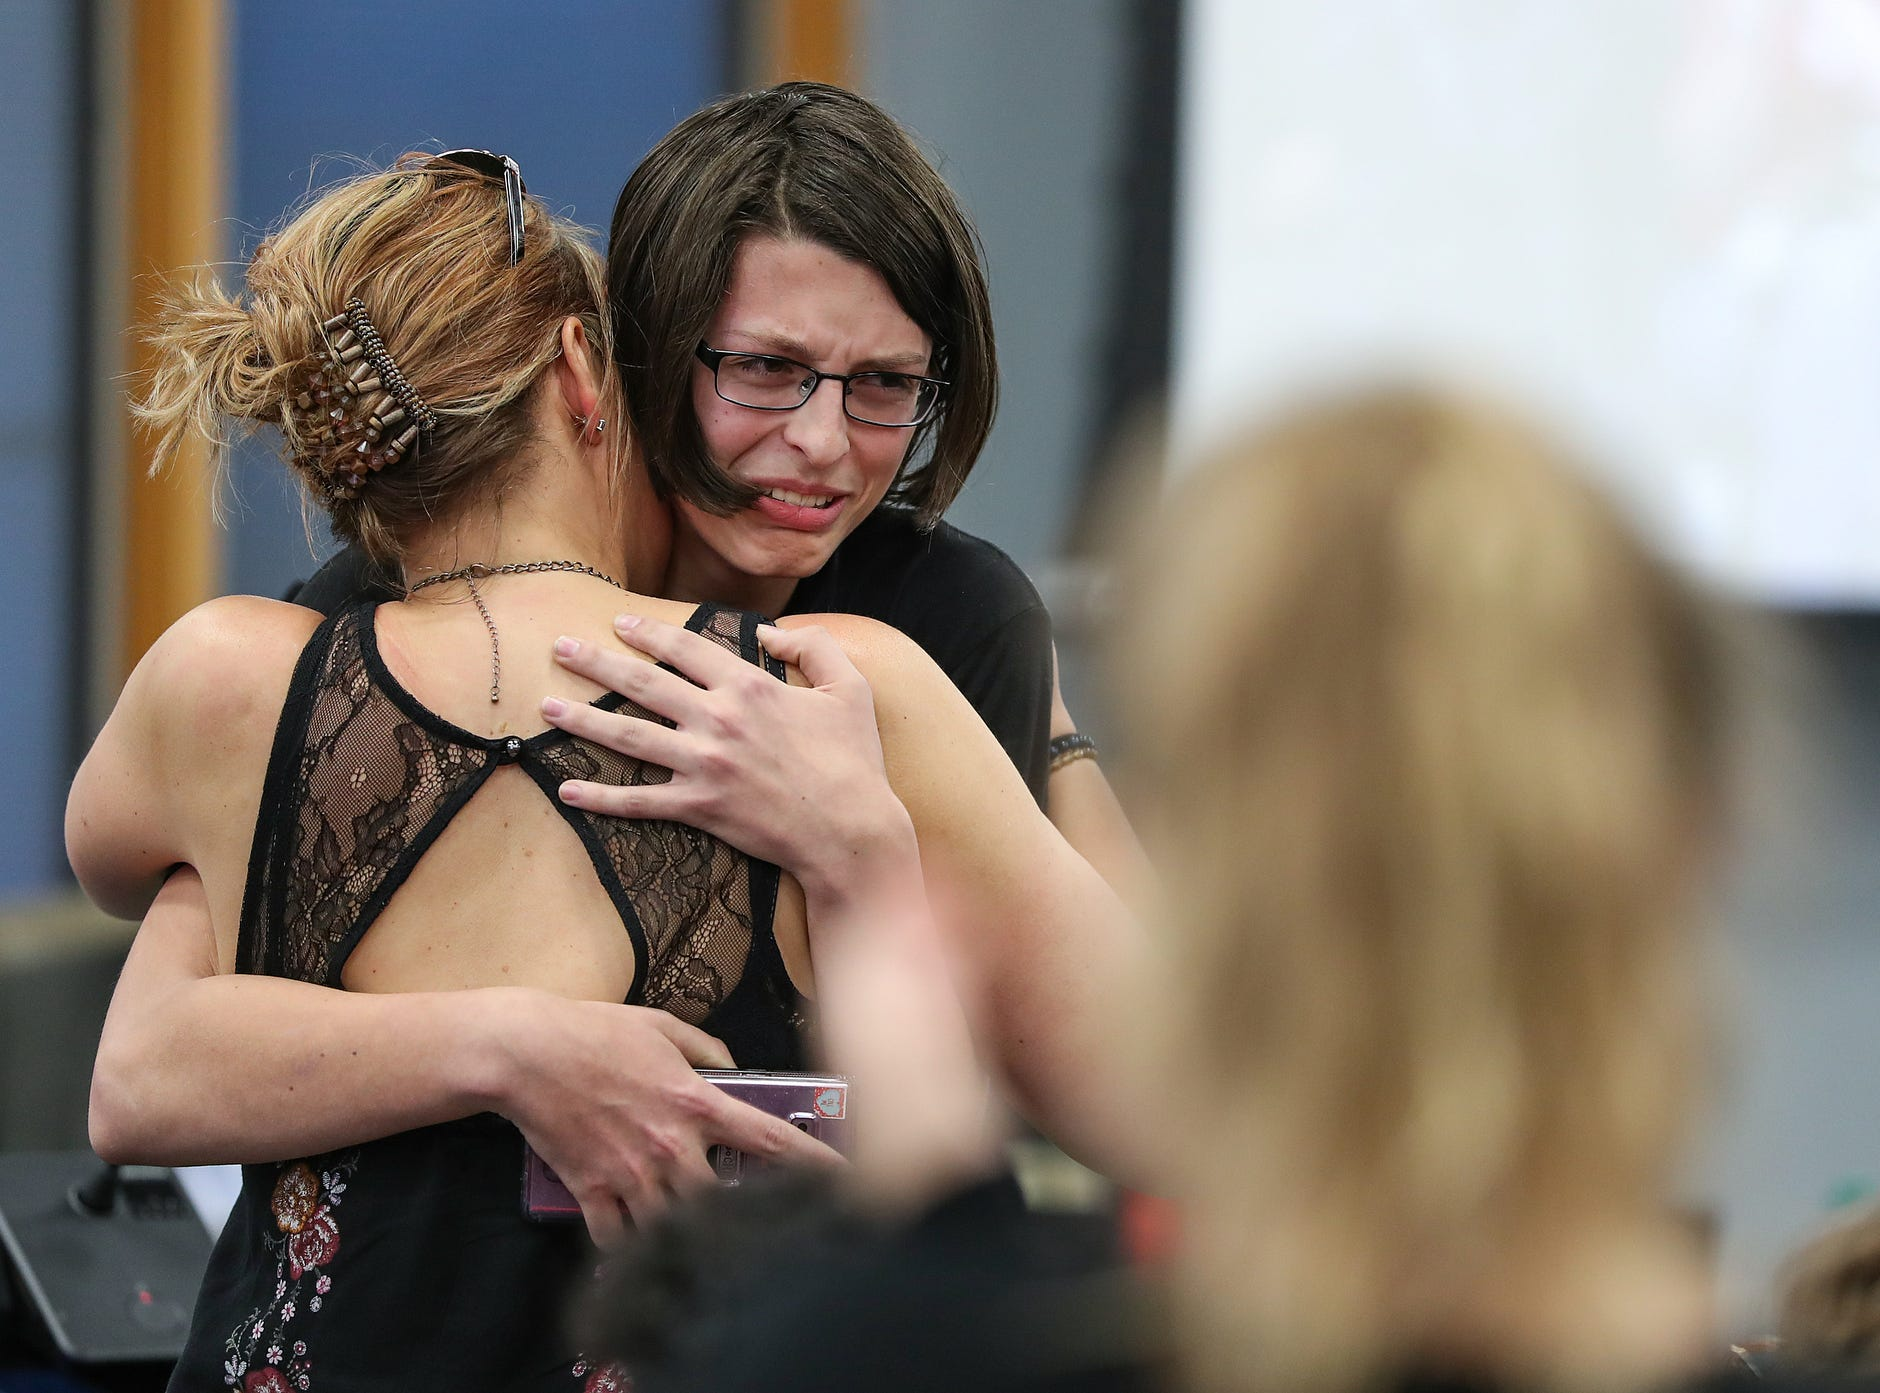 From right, Hamilton Southeastern senior Callie Waligora hugs her mother Jennifer Waligora, after Callie delivered an emotional personal statement at the Hamilton Southeastern Schools board meeting at Cumberland Road Elementary in Fishers, Ind., Wednesday, May 8, 2019. The board voted 5-2 to adopt an anti-discrimination policy including language specifically prohibiting discrimination and harassment based on gender identity and sexual orientation.